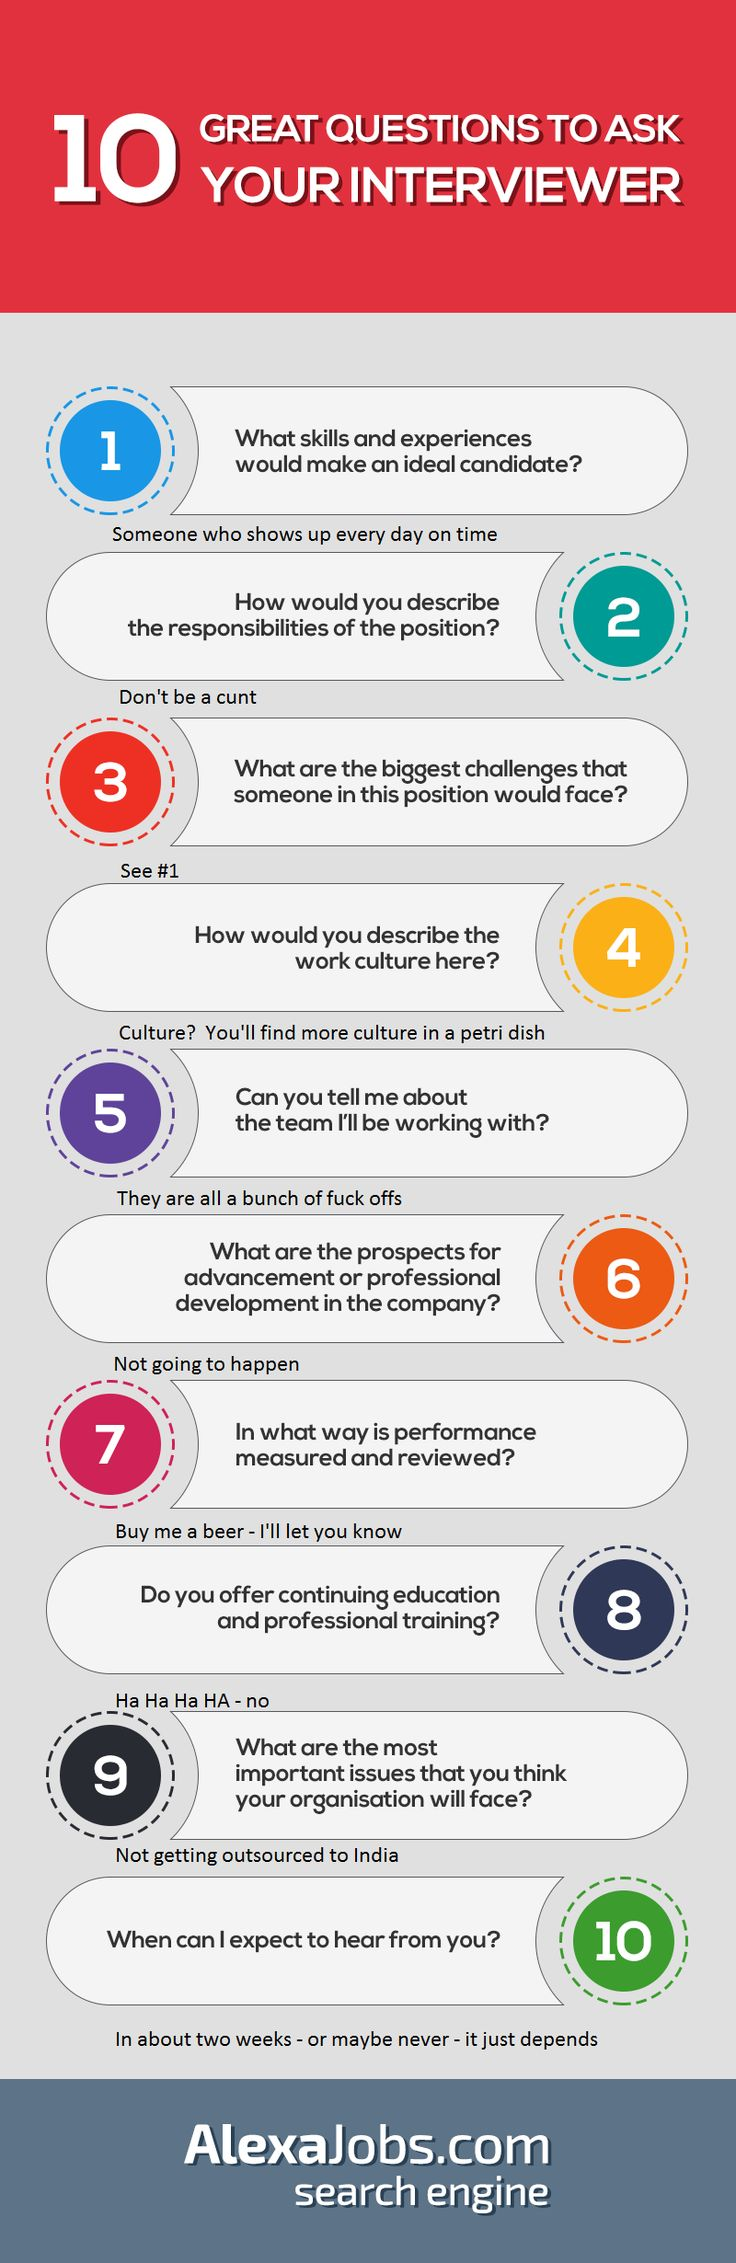 best ideas about medical school interview questions on 10 great questions to ask your interviewer infographic often job interviews can feel like an interrogation but they re meant to be a conversation